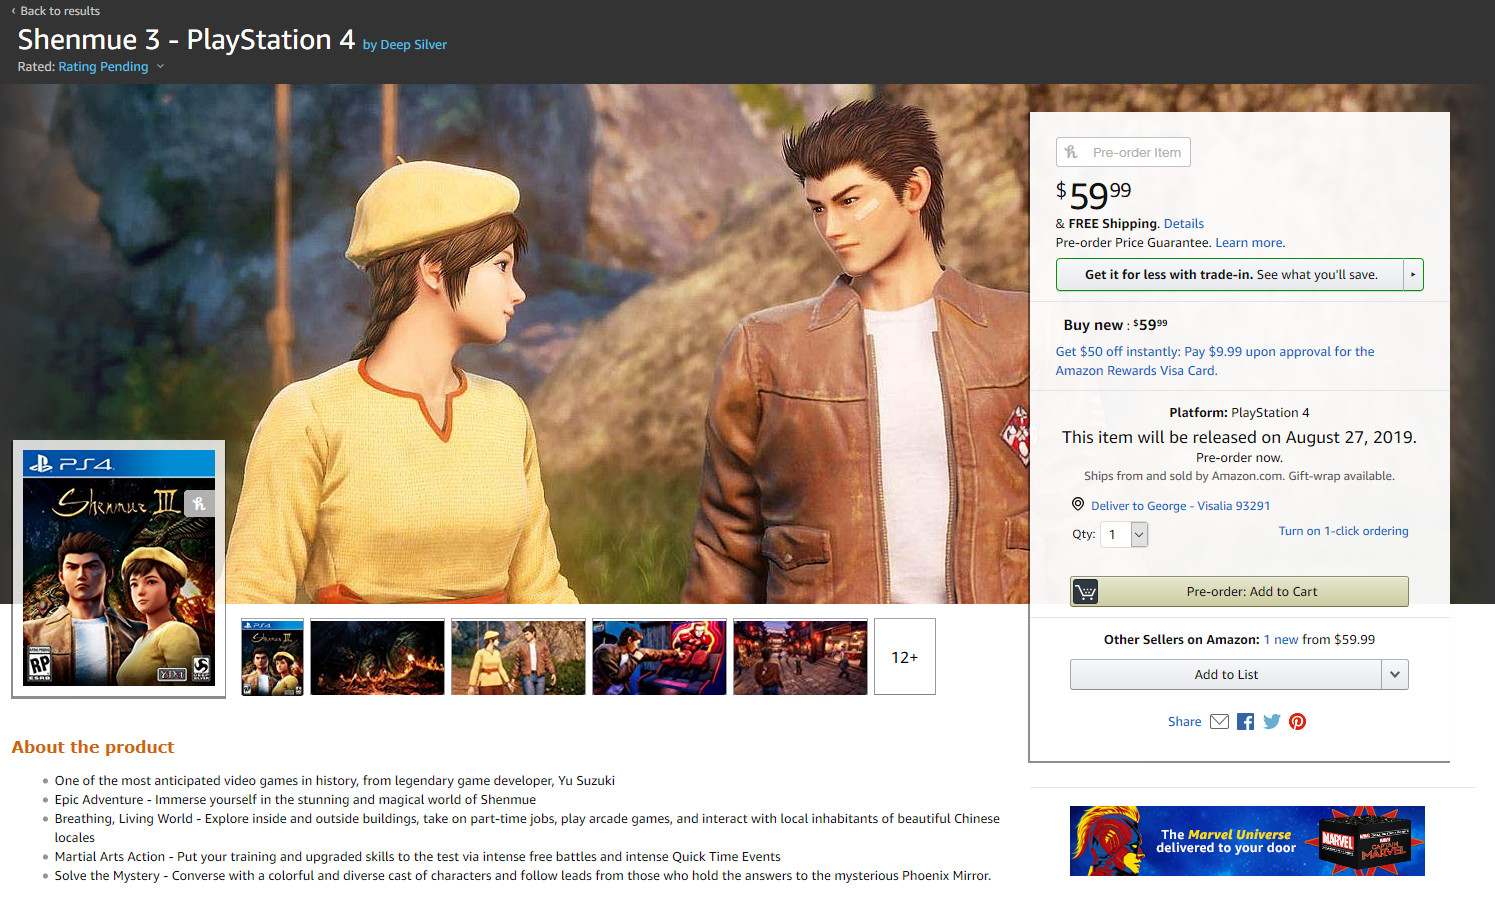 Shenmue 3 pre-order page up on Amazon » SEGAbits - #1 Source for